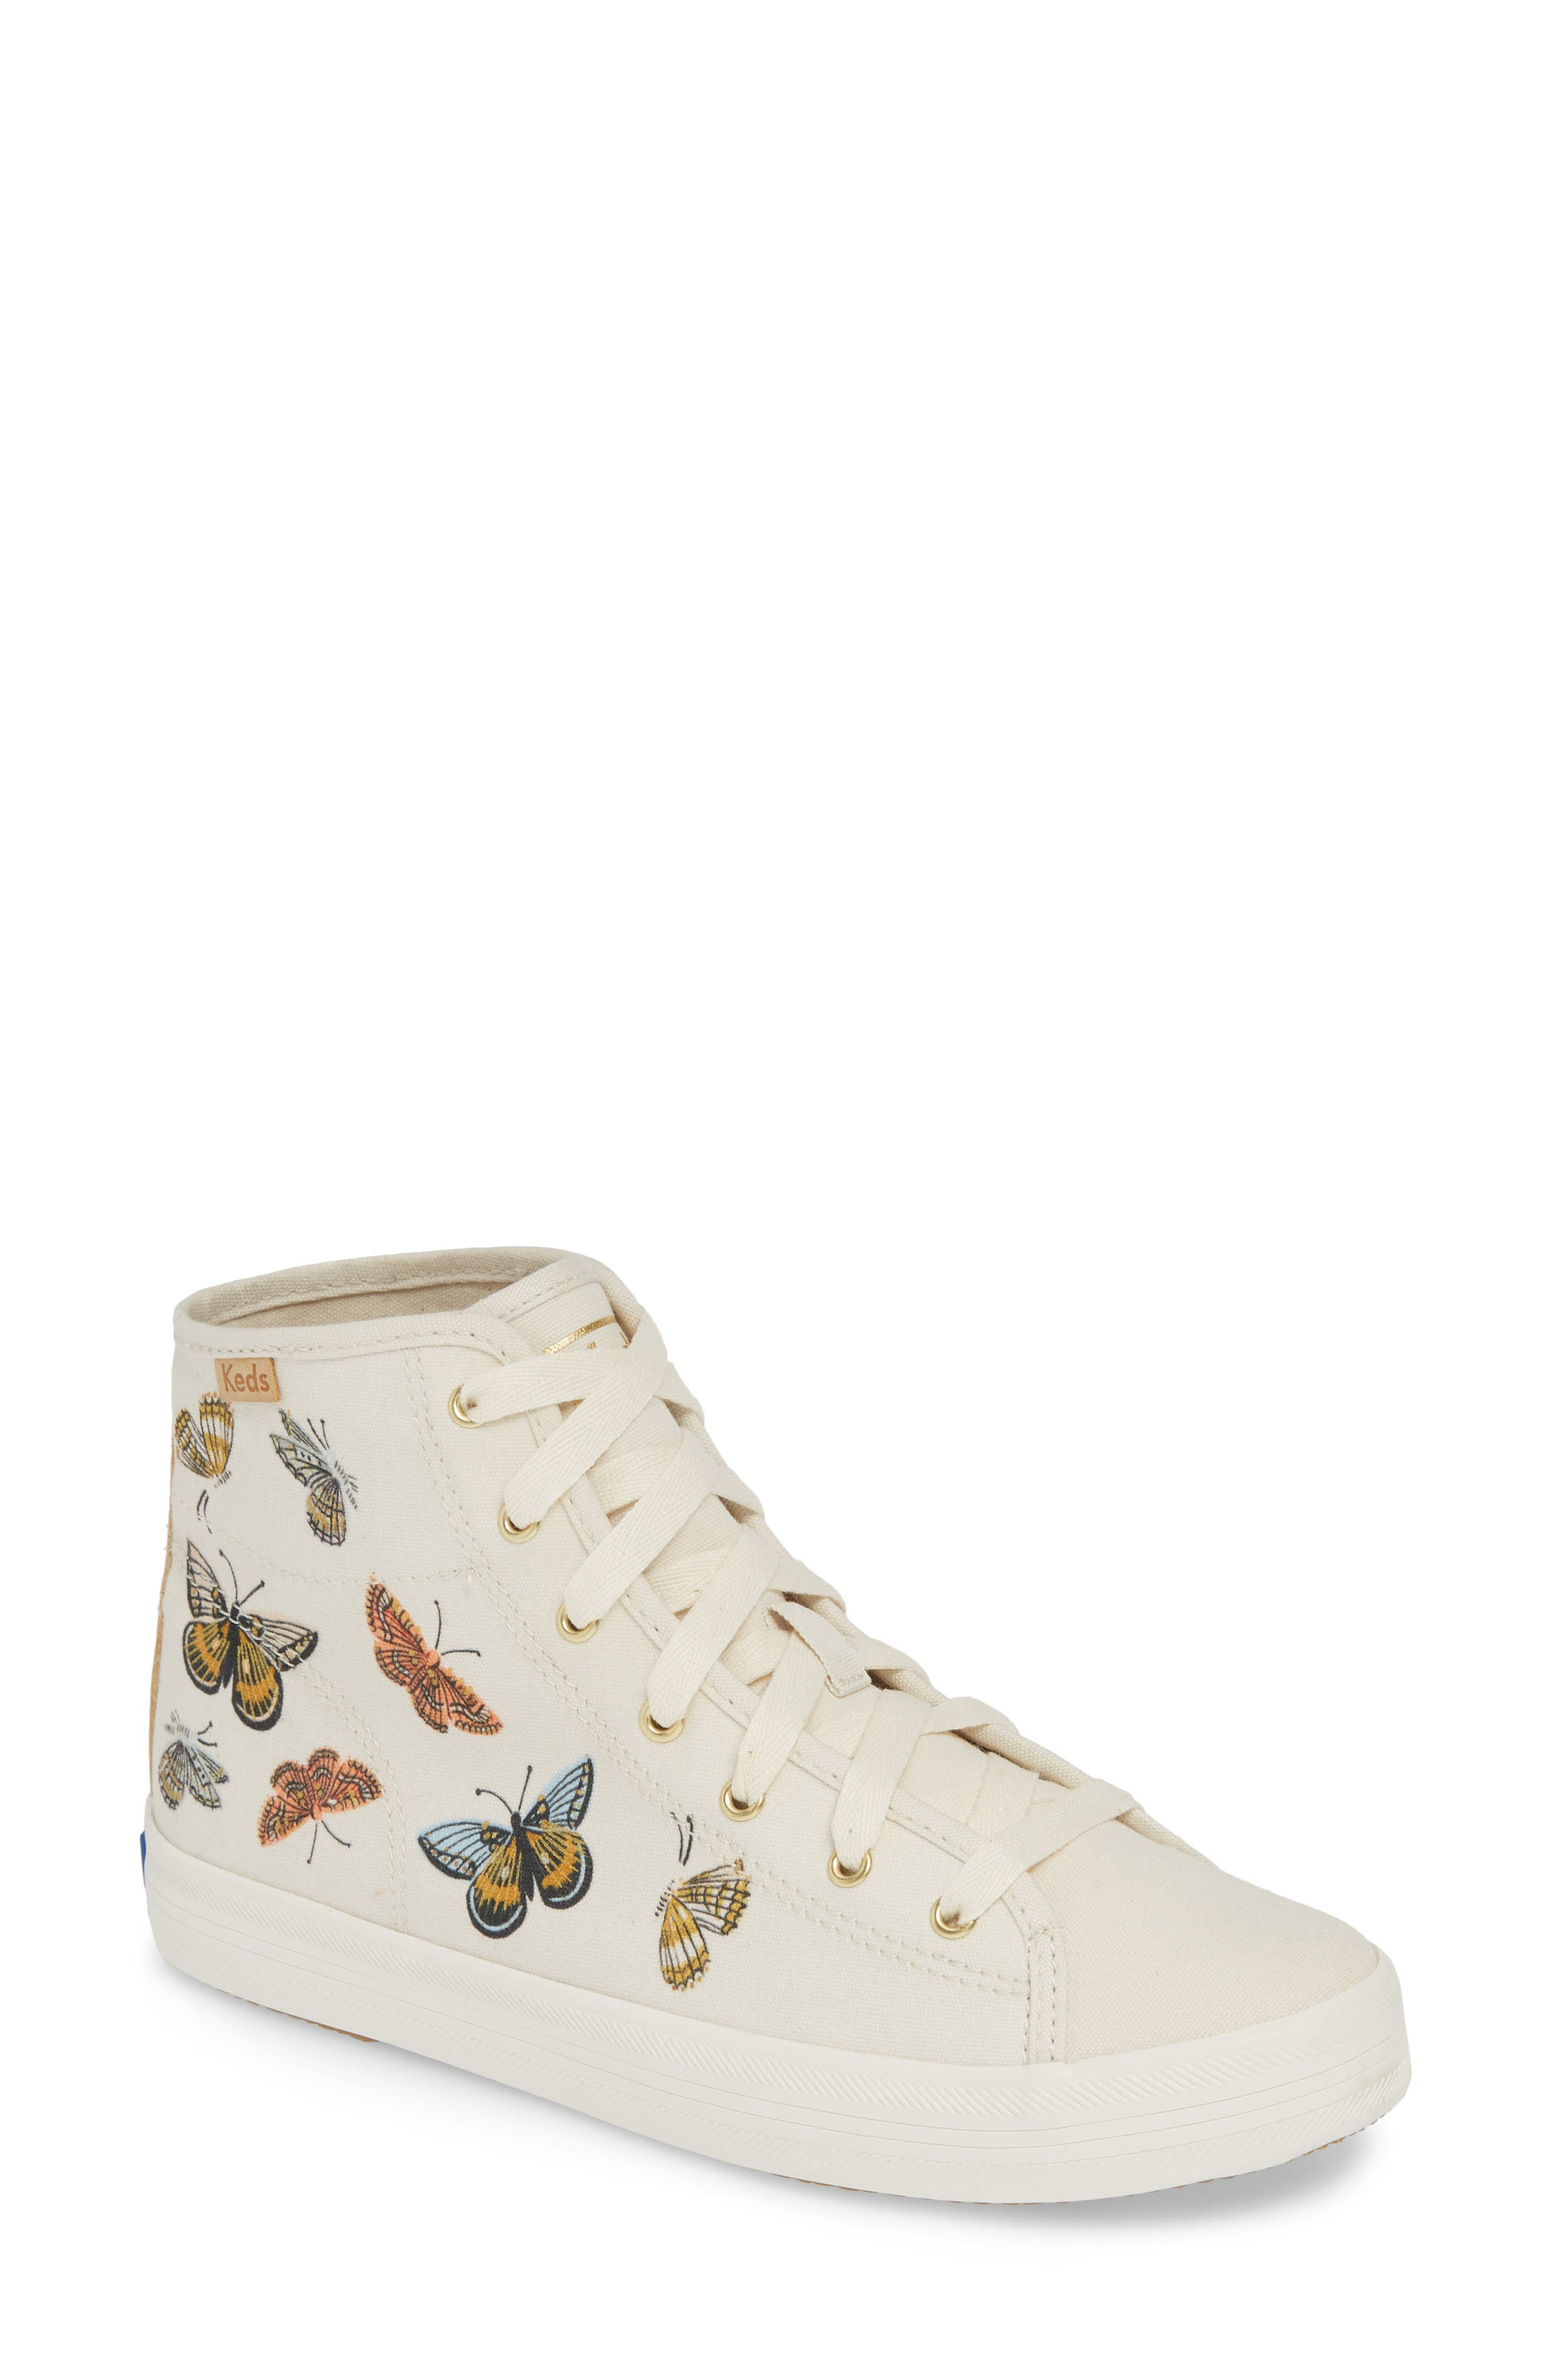 KEDS<SUP>®</SUP> x Rifle Paper Co. Kickstart Butterfly Sneaker, Main, color, CREAM